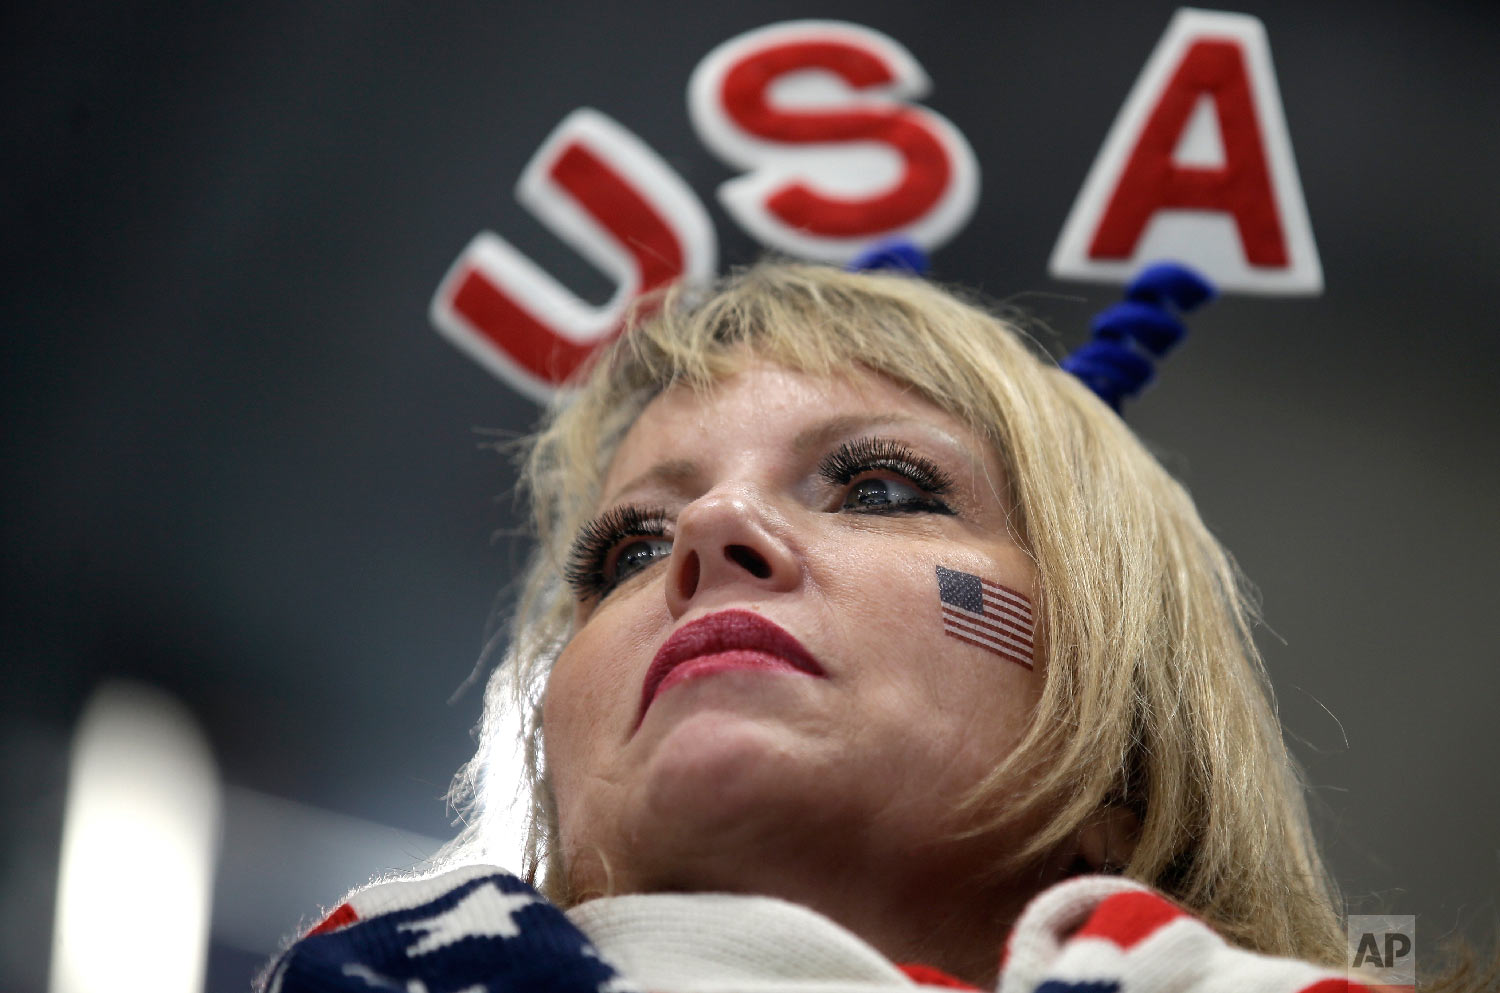 A woman wearing a U.S.A sign on her head watches the mixed doubles curling match at the 2018 Winter Olympics in Gangneung, South Korea, Saturday, Feb. 10, 2018. (AP Photo/Aaron Favila)